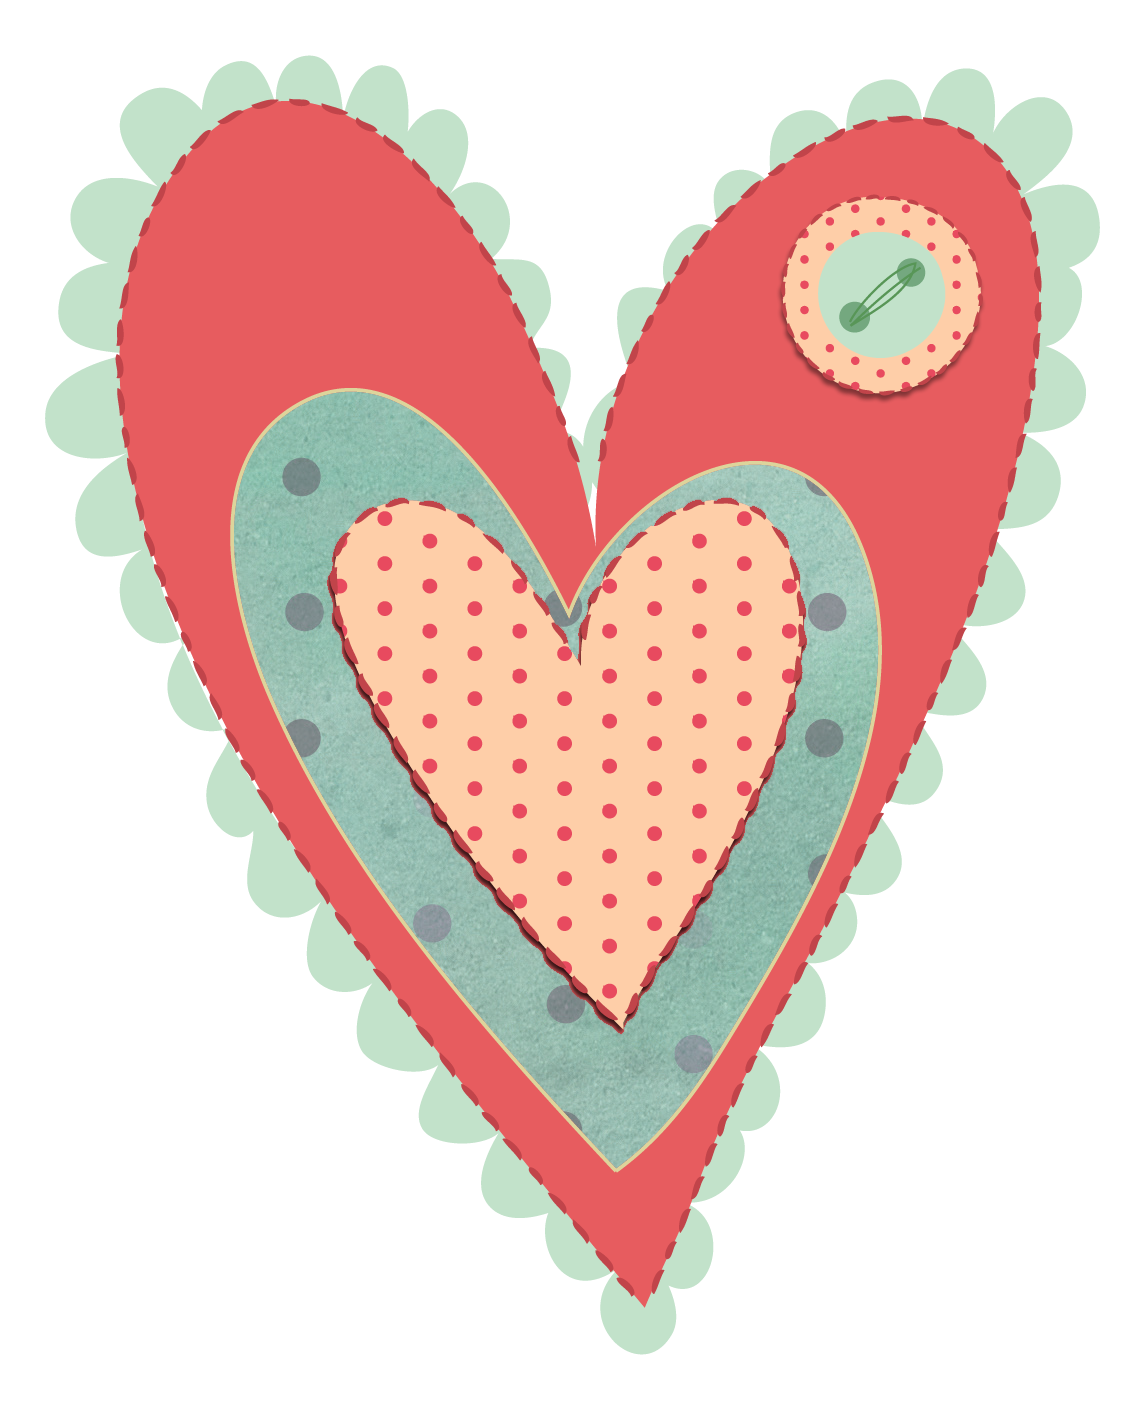 heart clipart - Google Search | Clipart - Valentine's Day ...